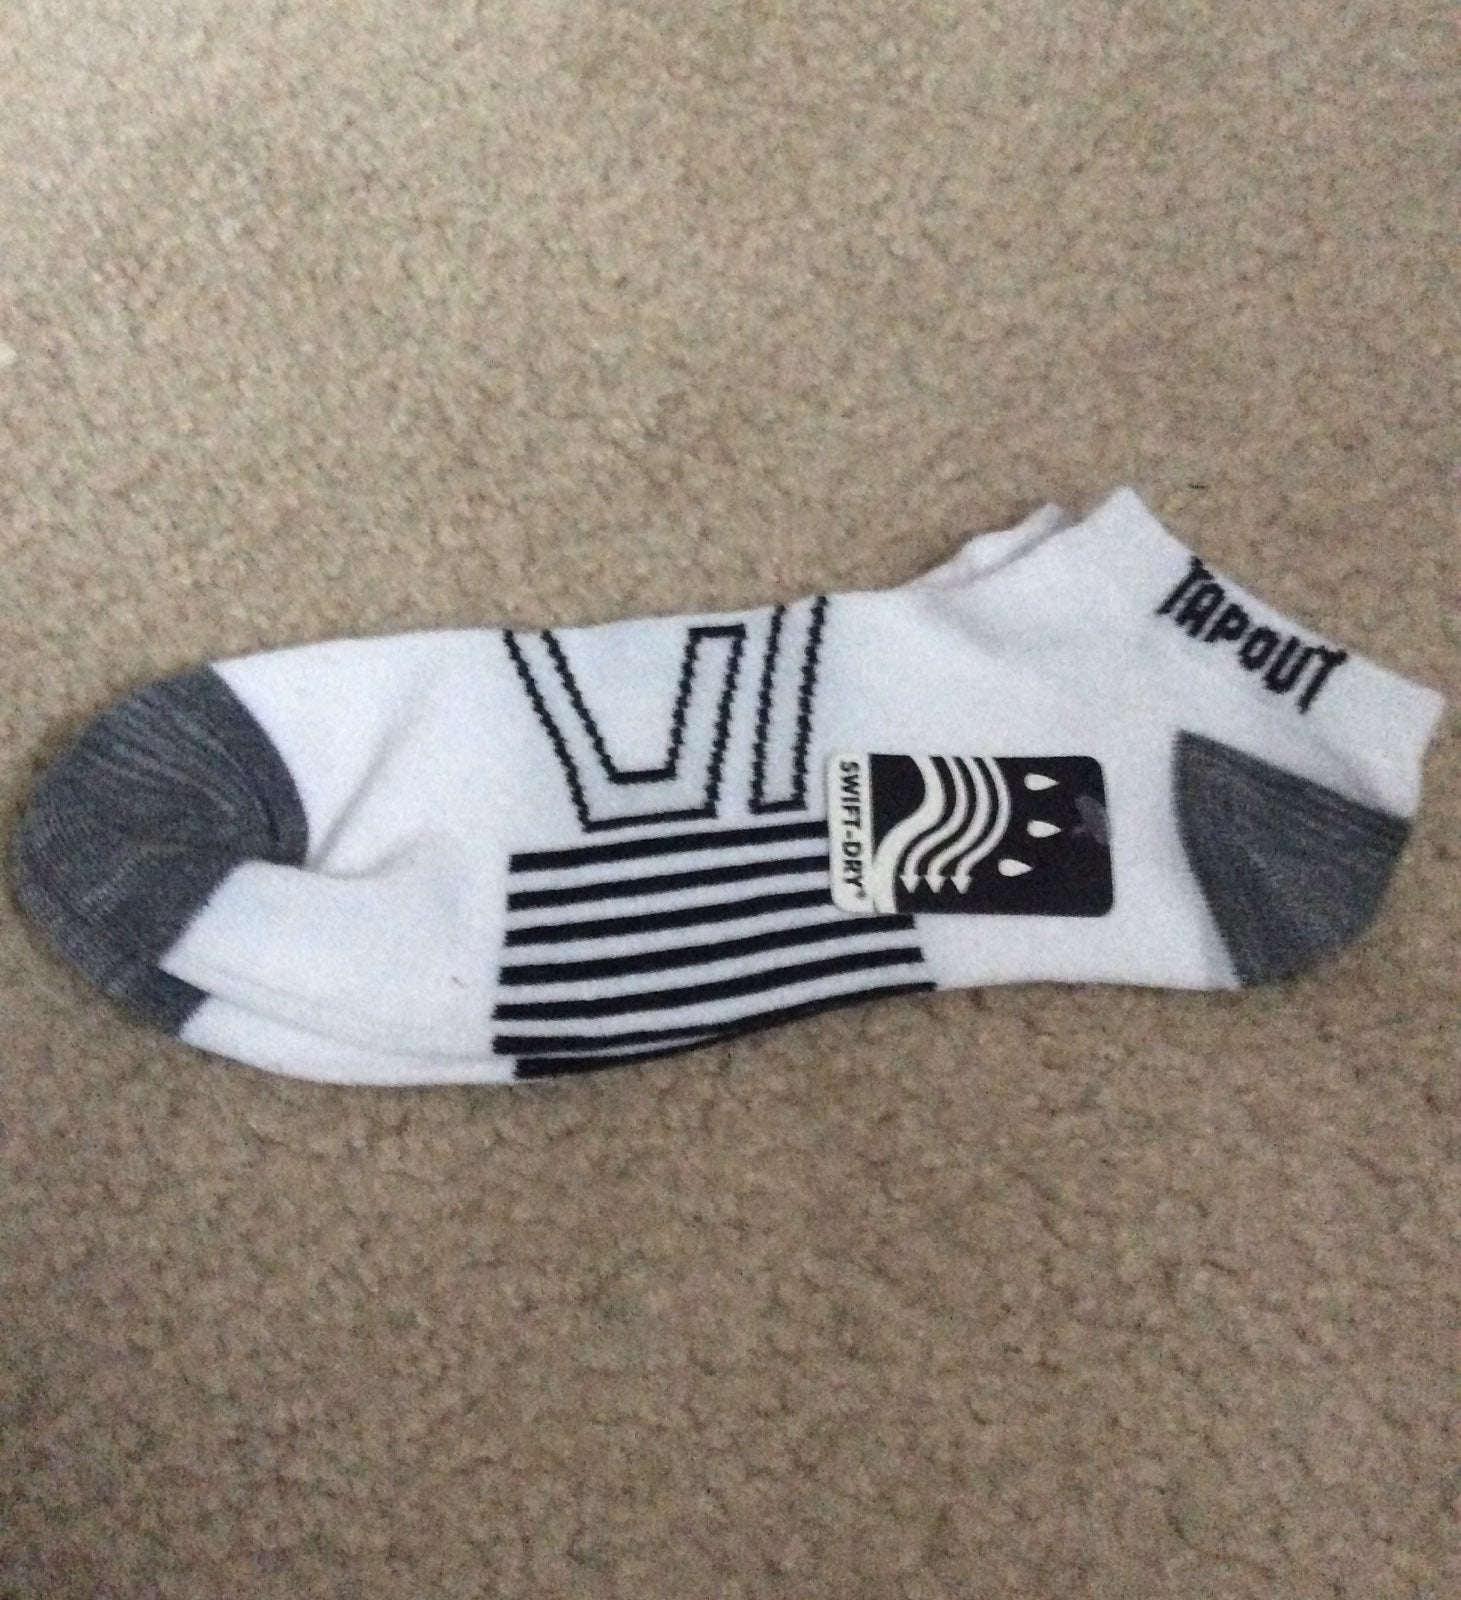 Tapout socks